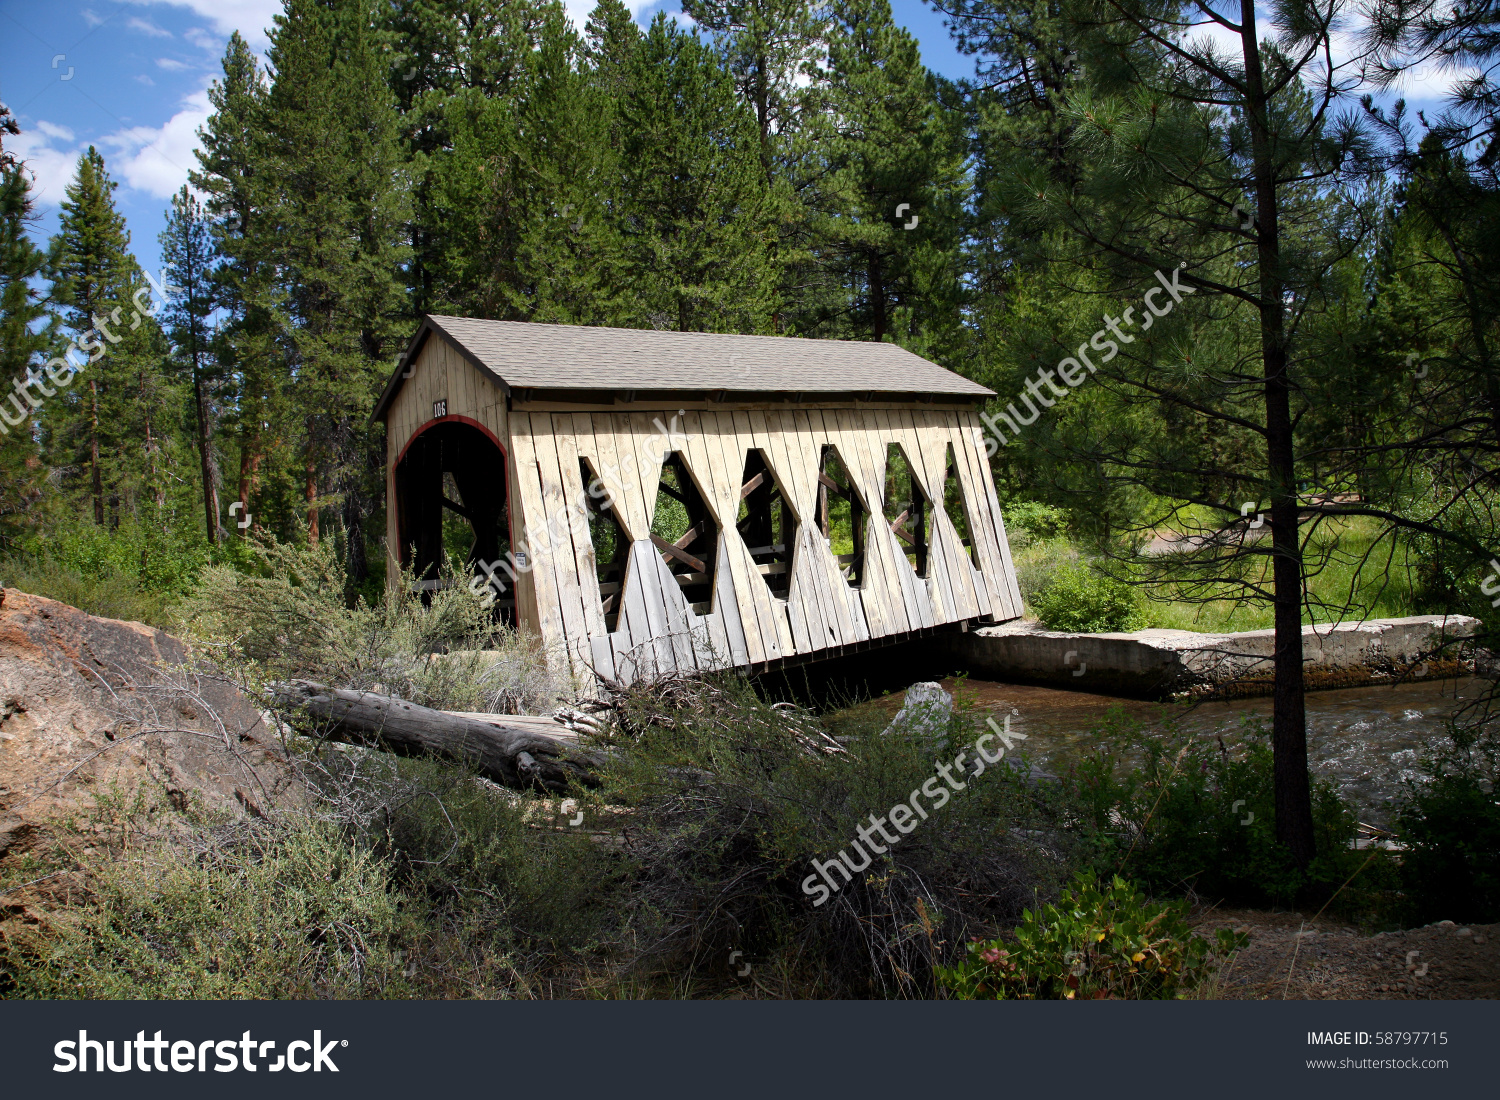 Old Covered Bridge, Bend, Oregon Stock Photo 58797715 : Shutterstock.